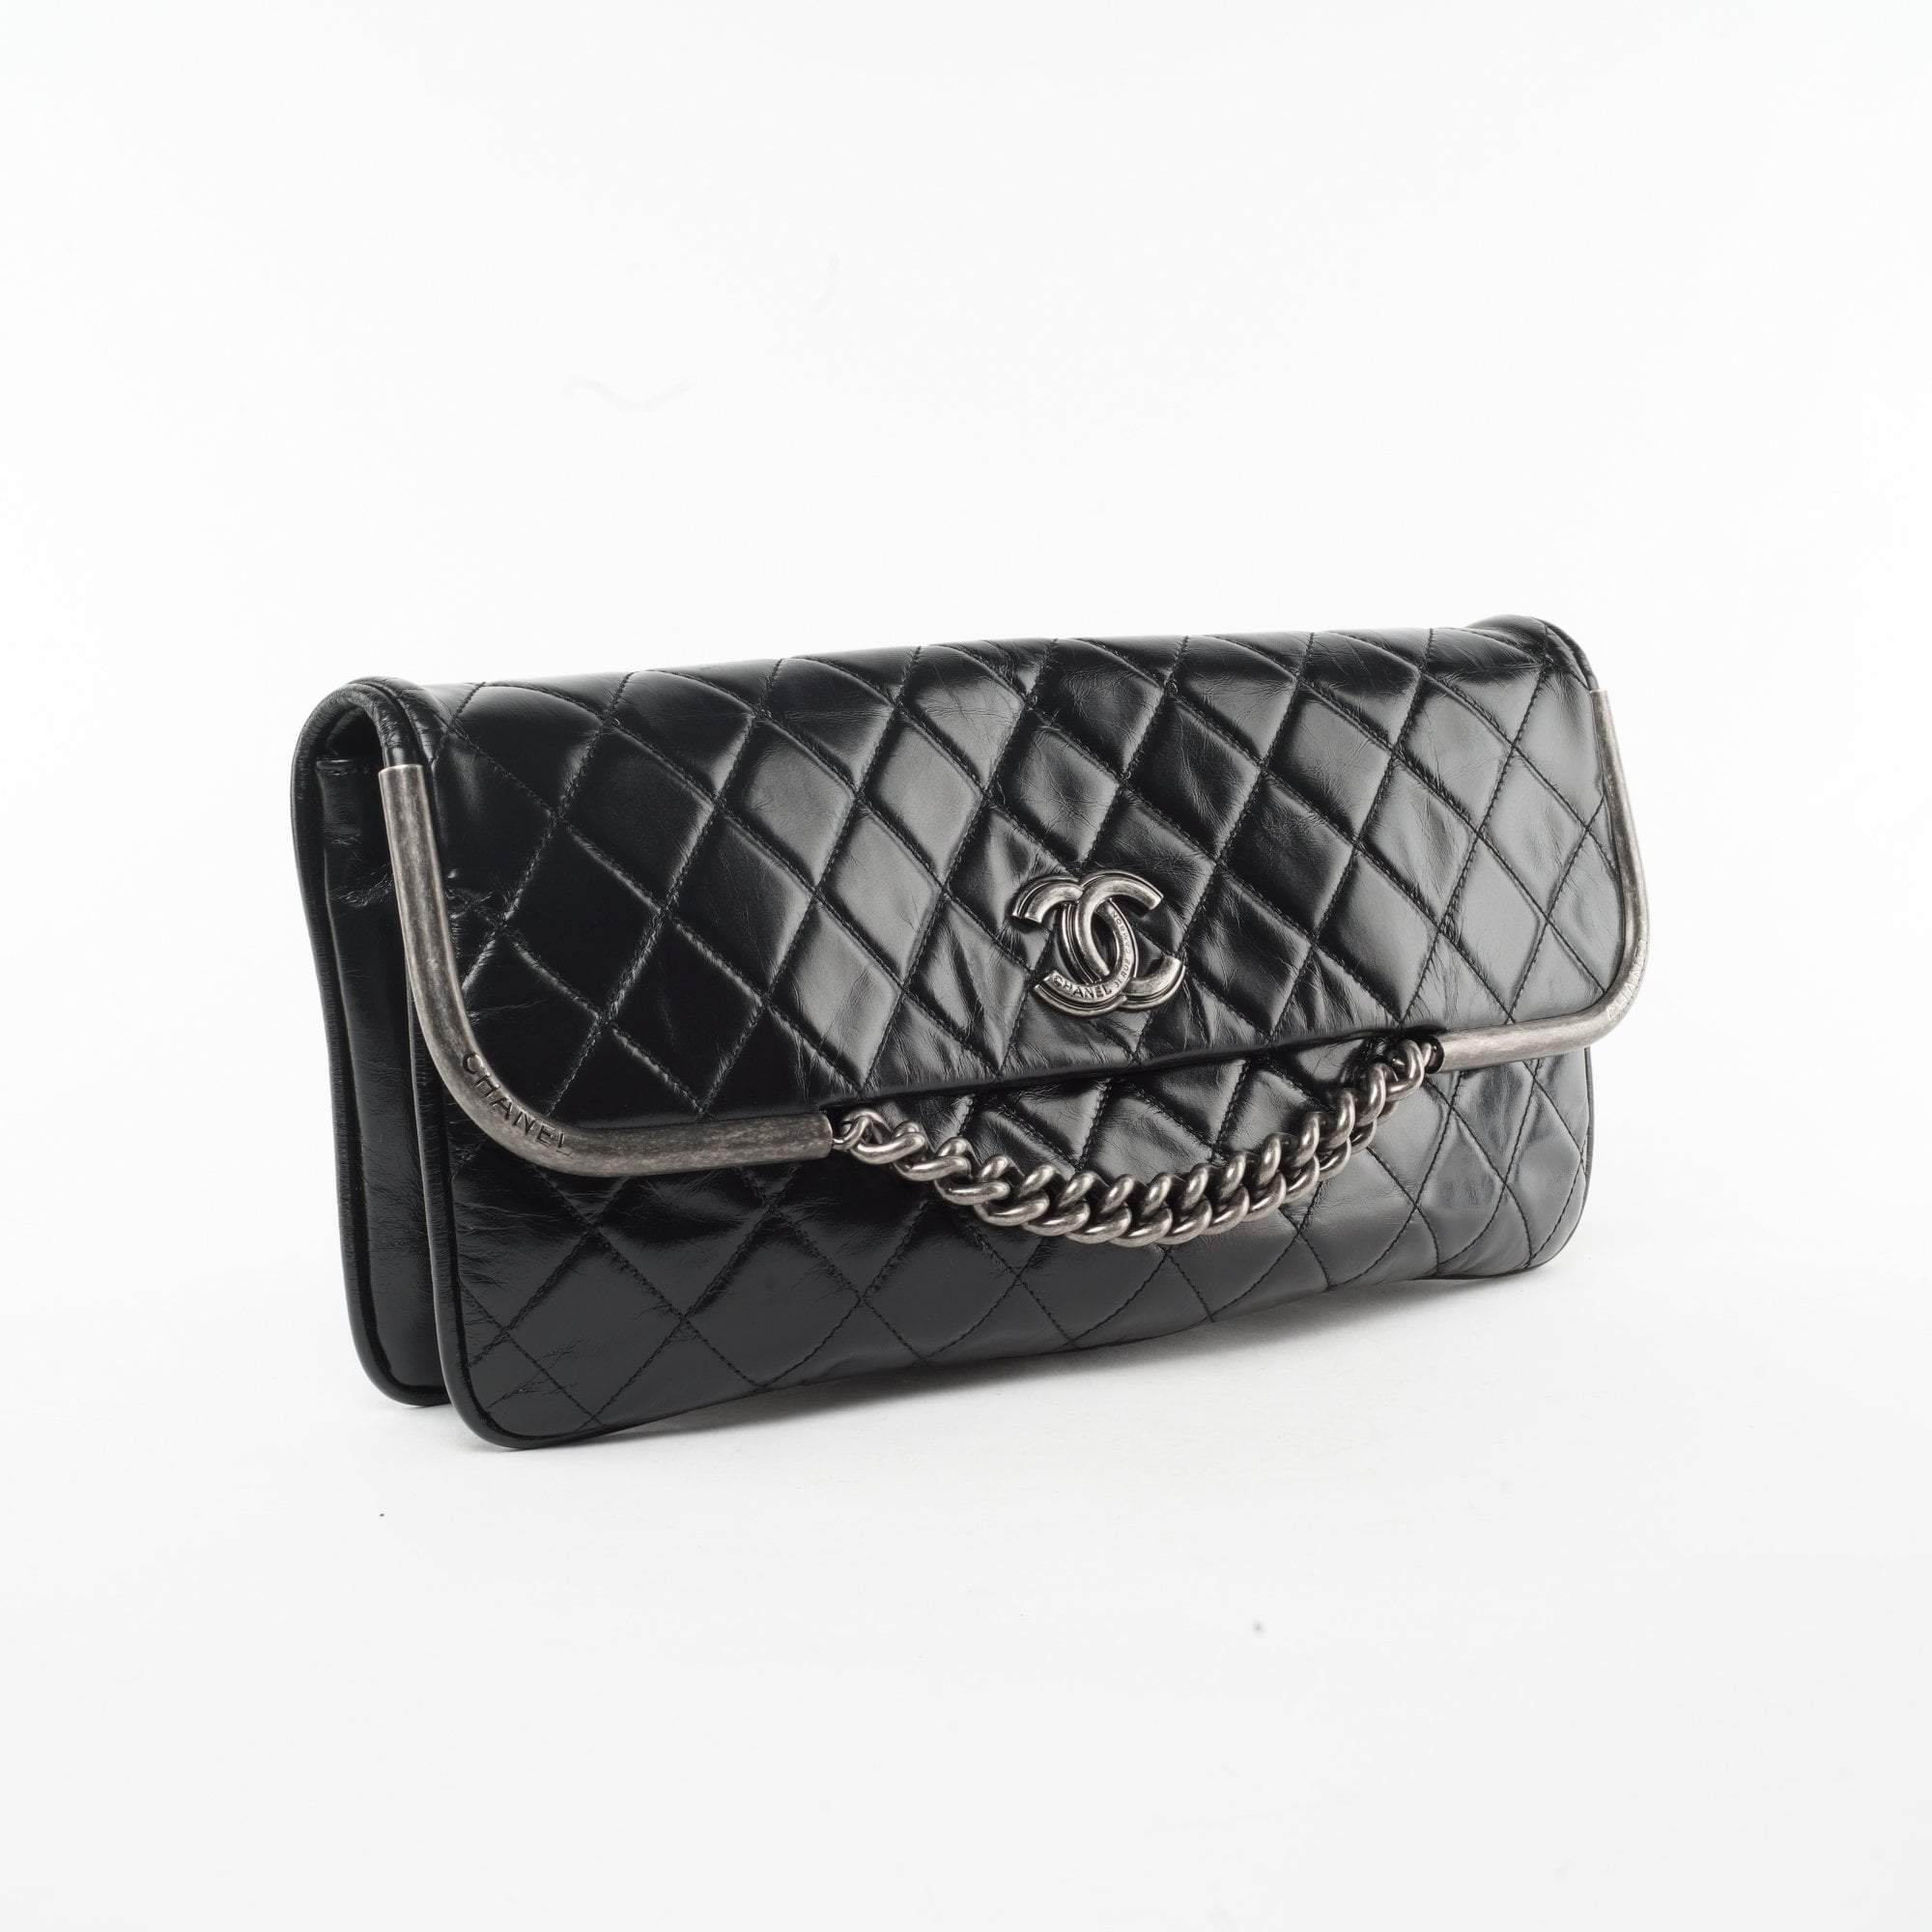 Chanel Black Quilted Leather Flap Clutch